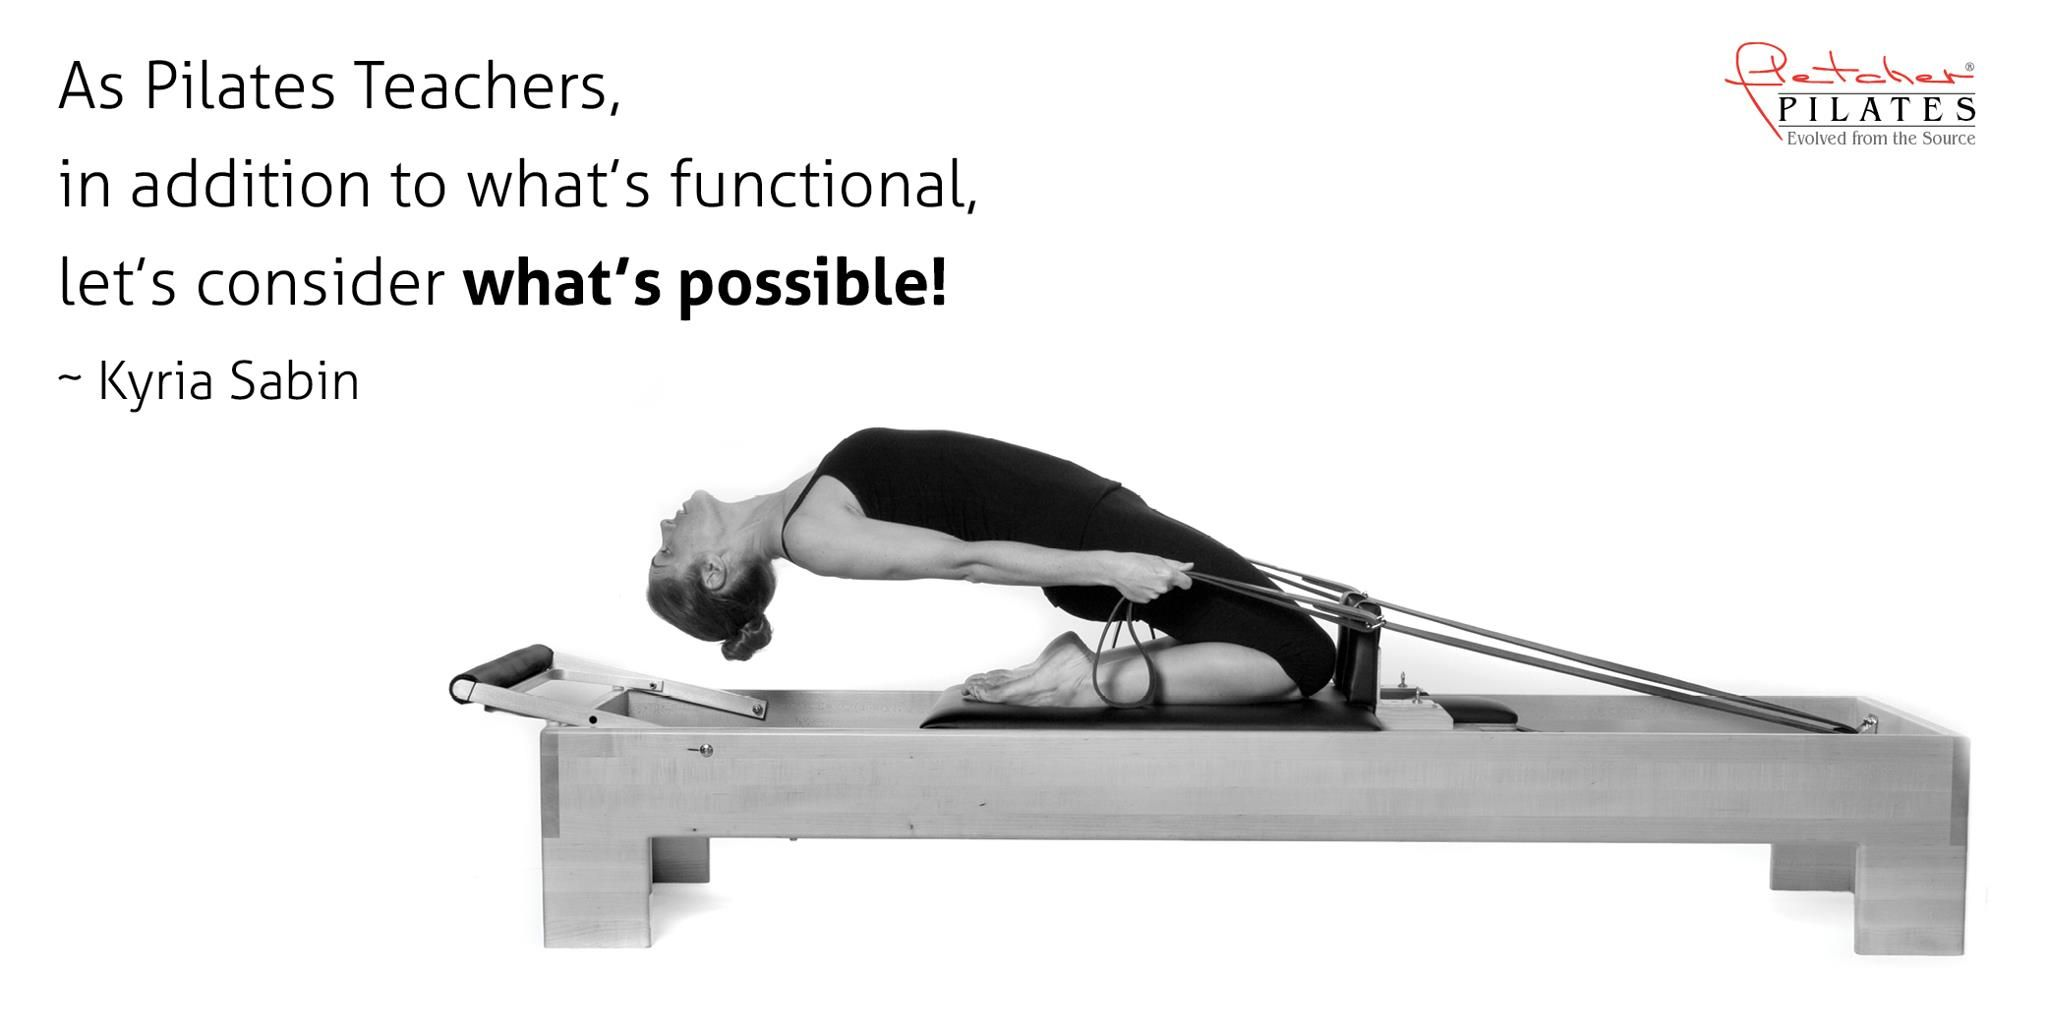 As Pilates Teachers, in addition to what's functional, let's consider what's possible! ~ Kyria Sabin